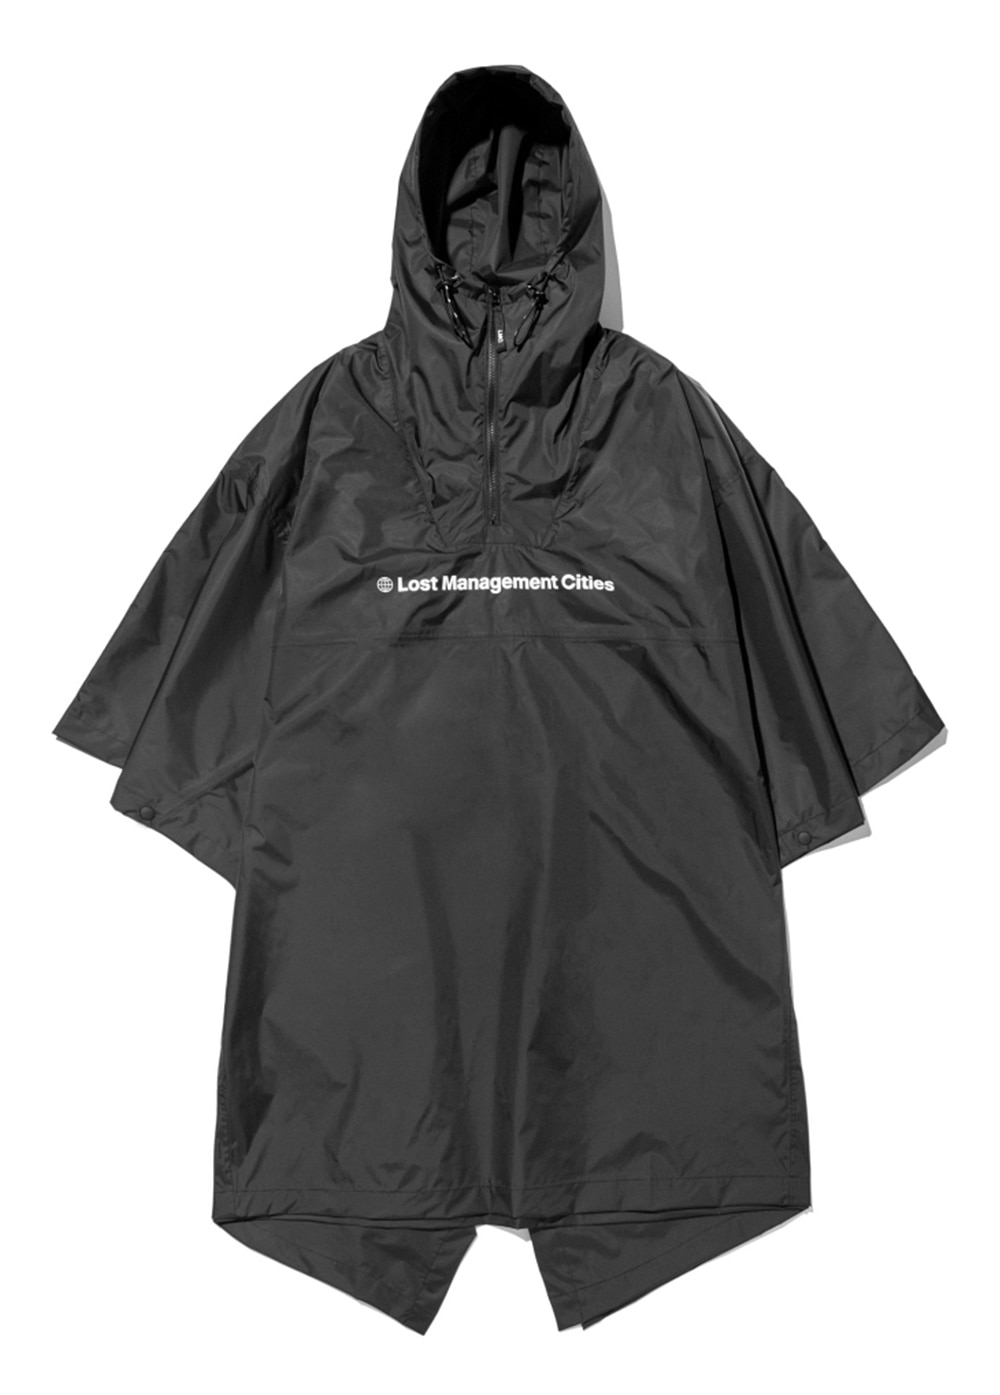 LMC SPACE 2.5 LAYER WATER PROOF PONCHO black